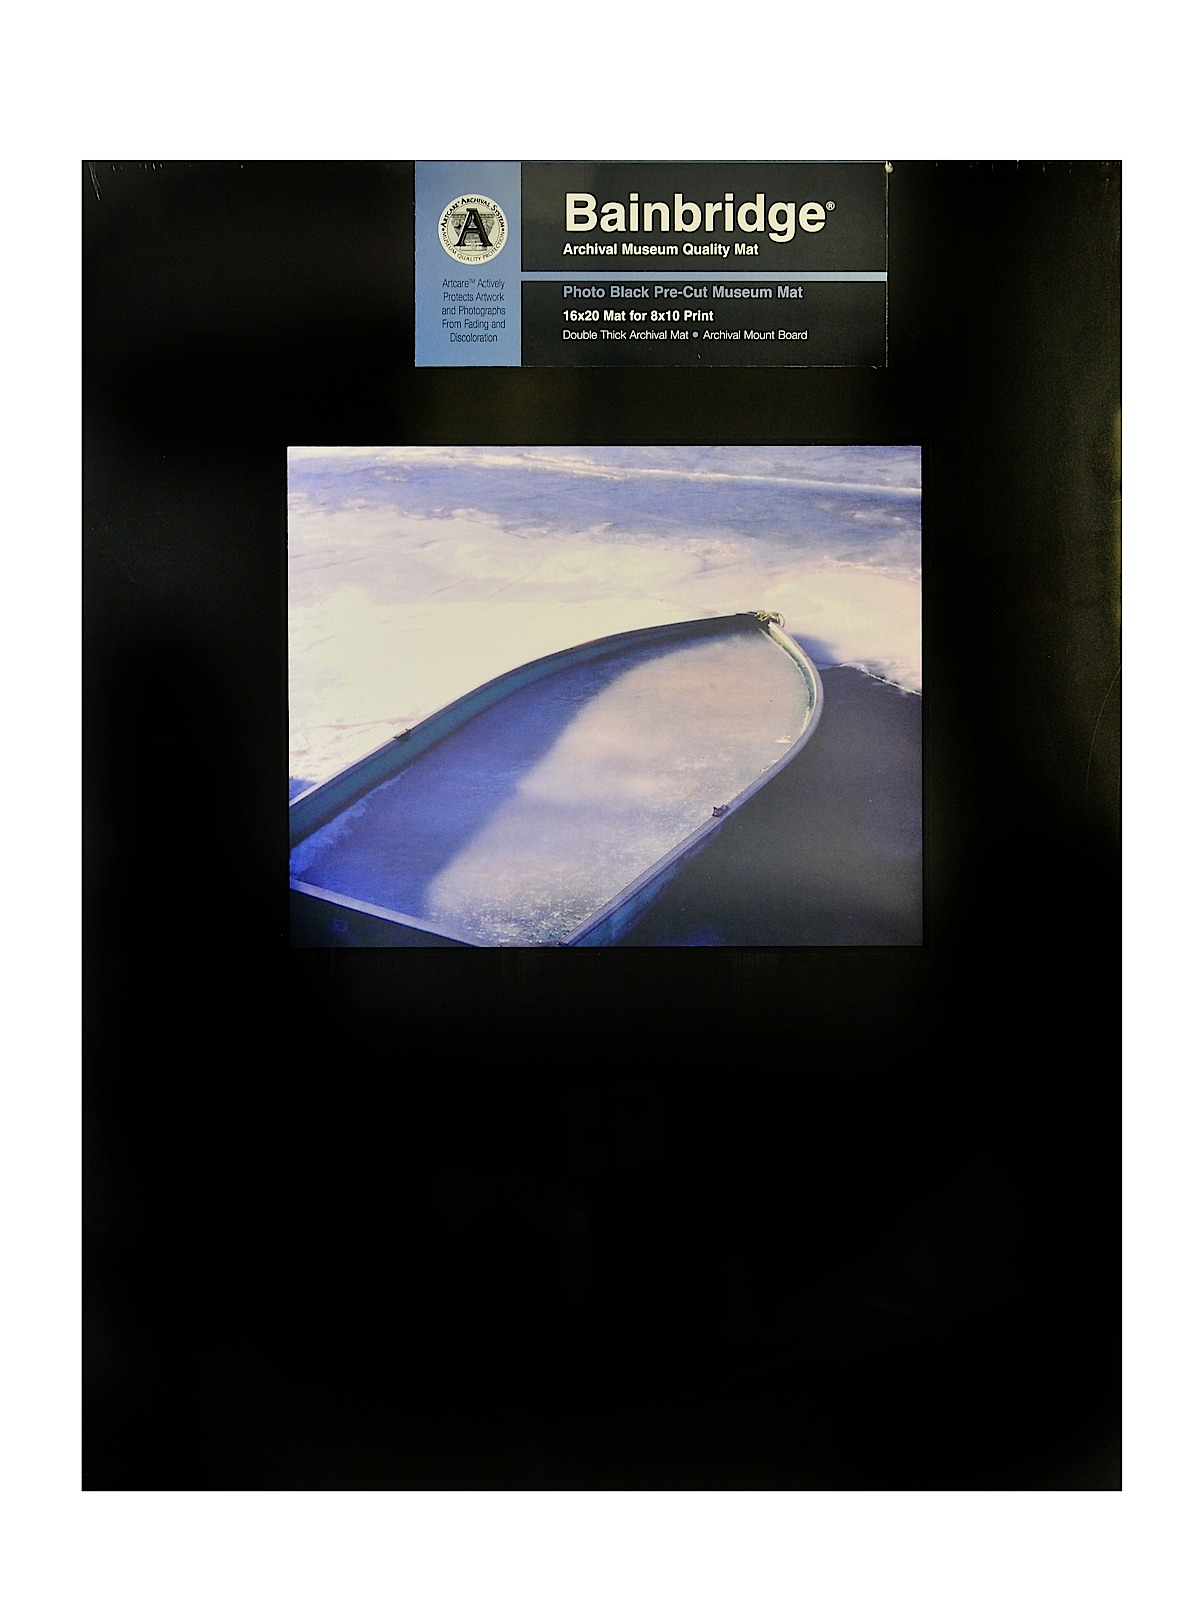 Archival Museum Quality Mat 16 in. x 20 in. landscape for 8 in. x 10 in. black